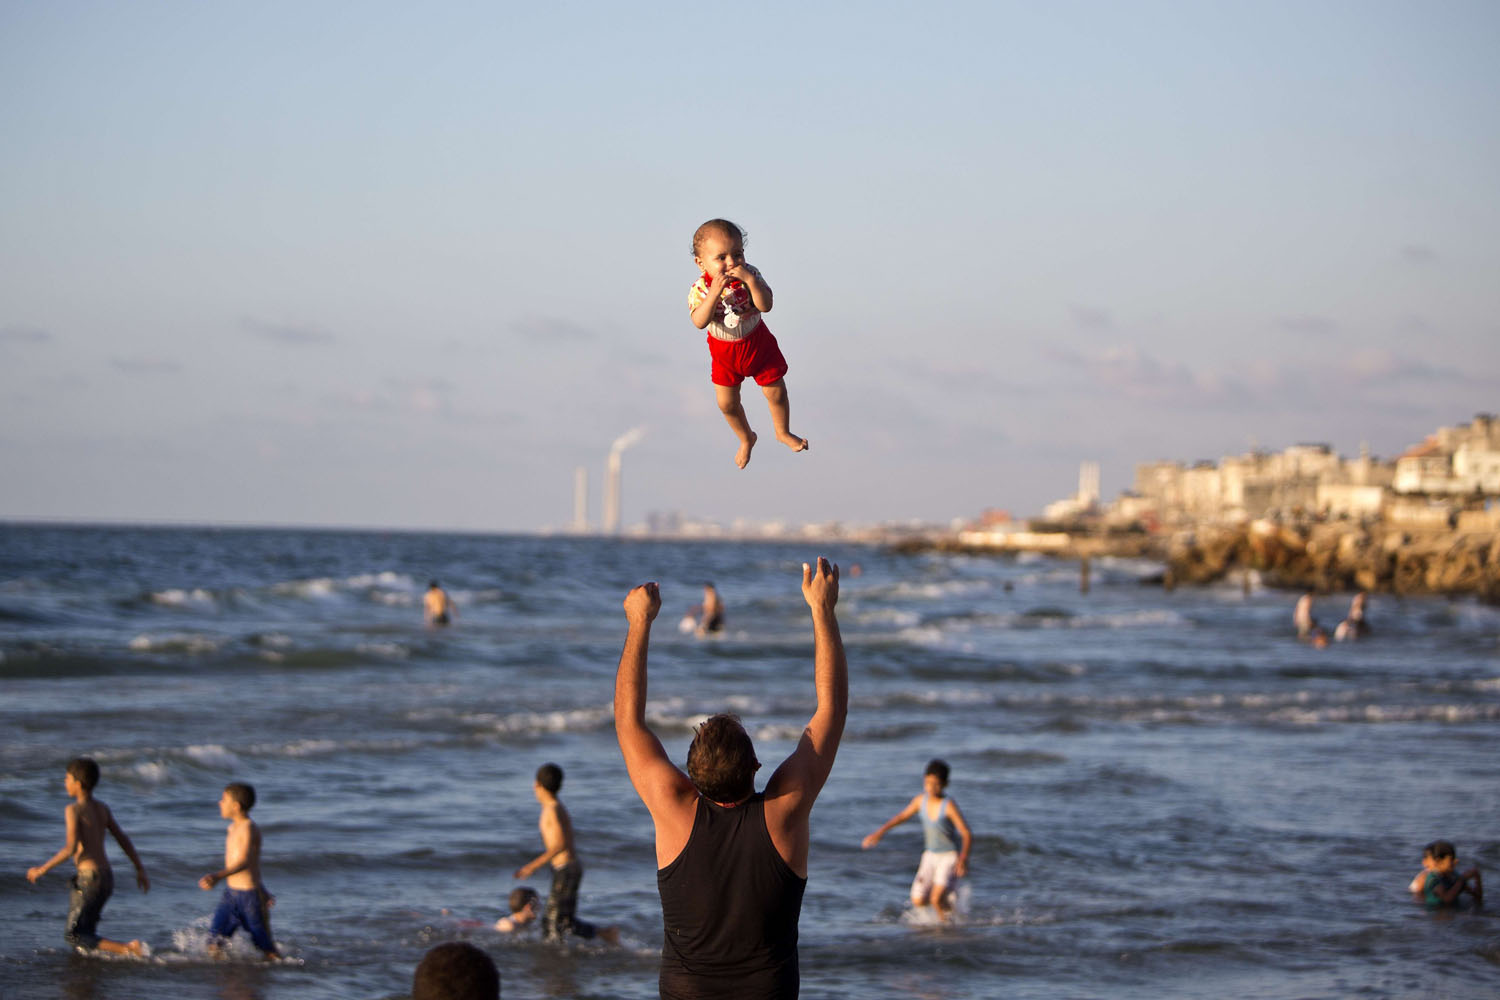 Sept. 7, 2014. A Palestinian man plays with his baby on a beach in Gaza city.